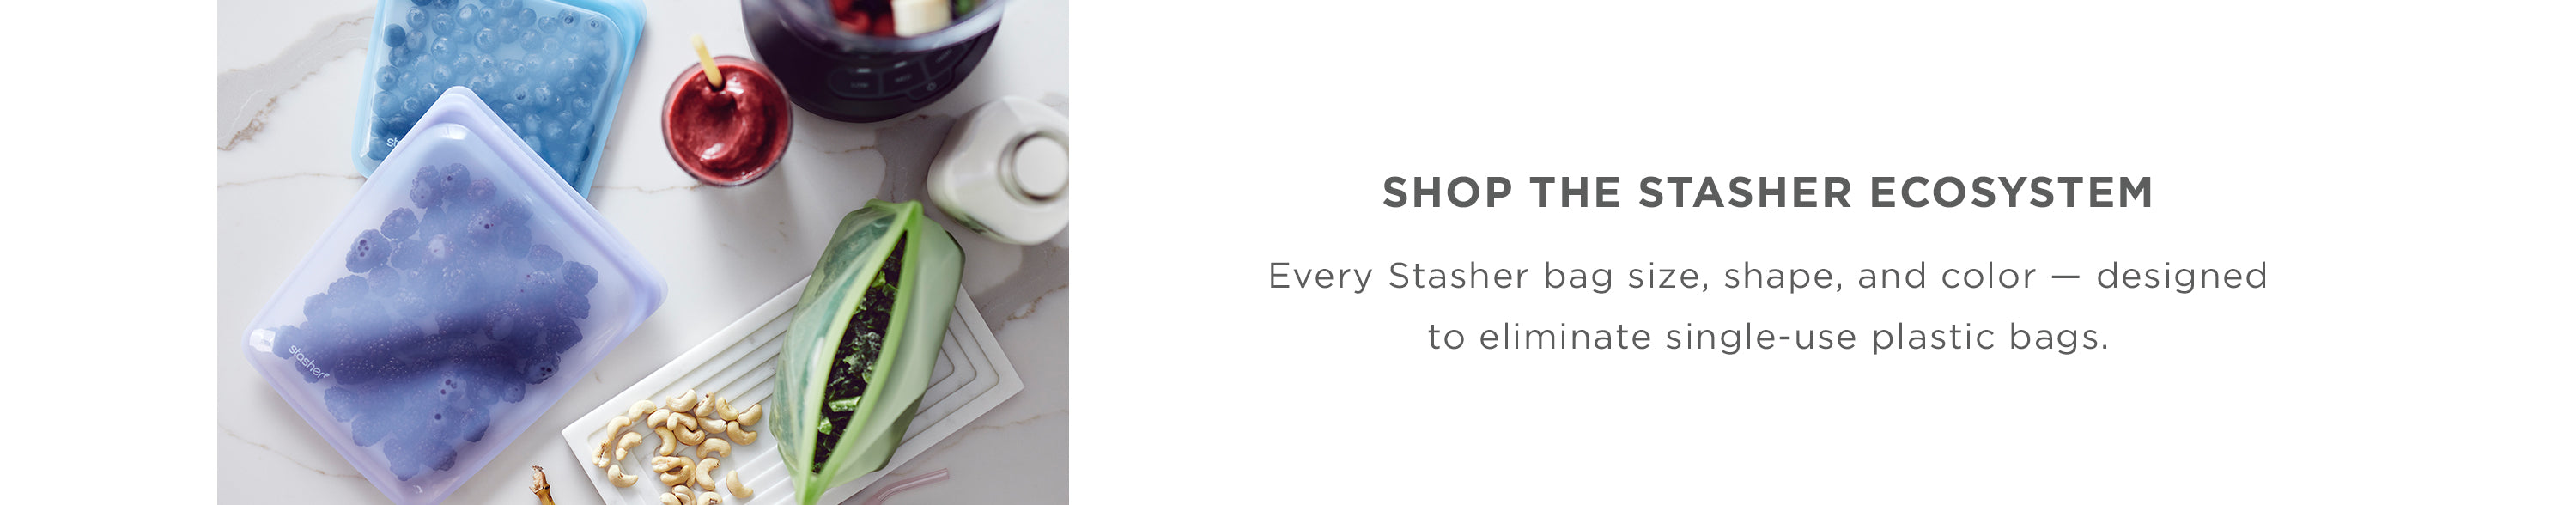 SHOP THE STASHER ECOSYSTEM